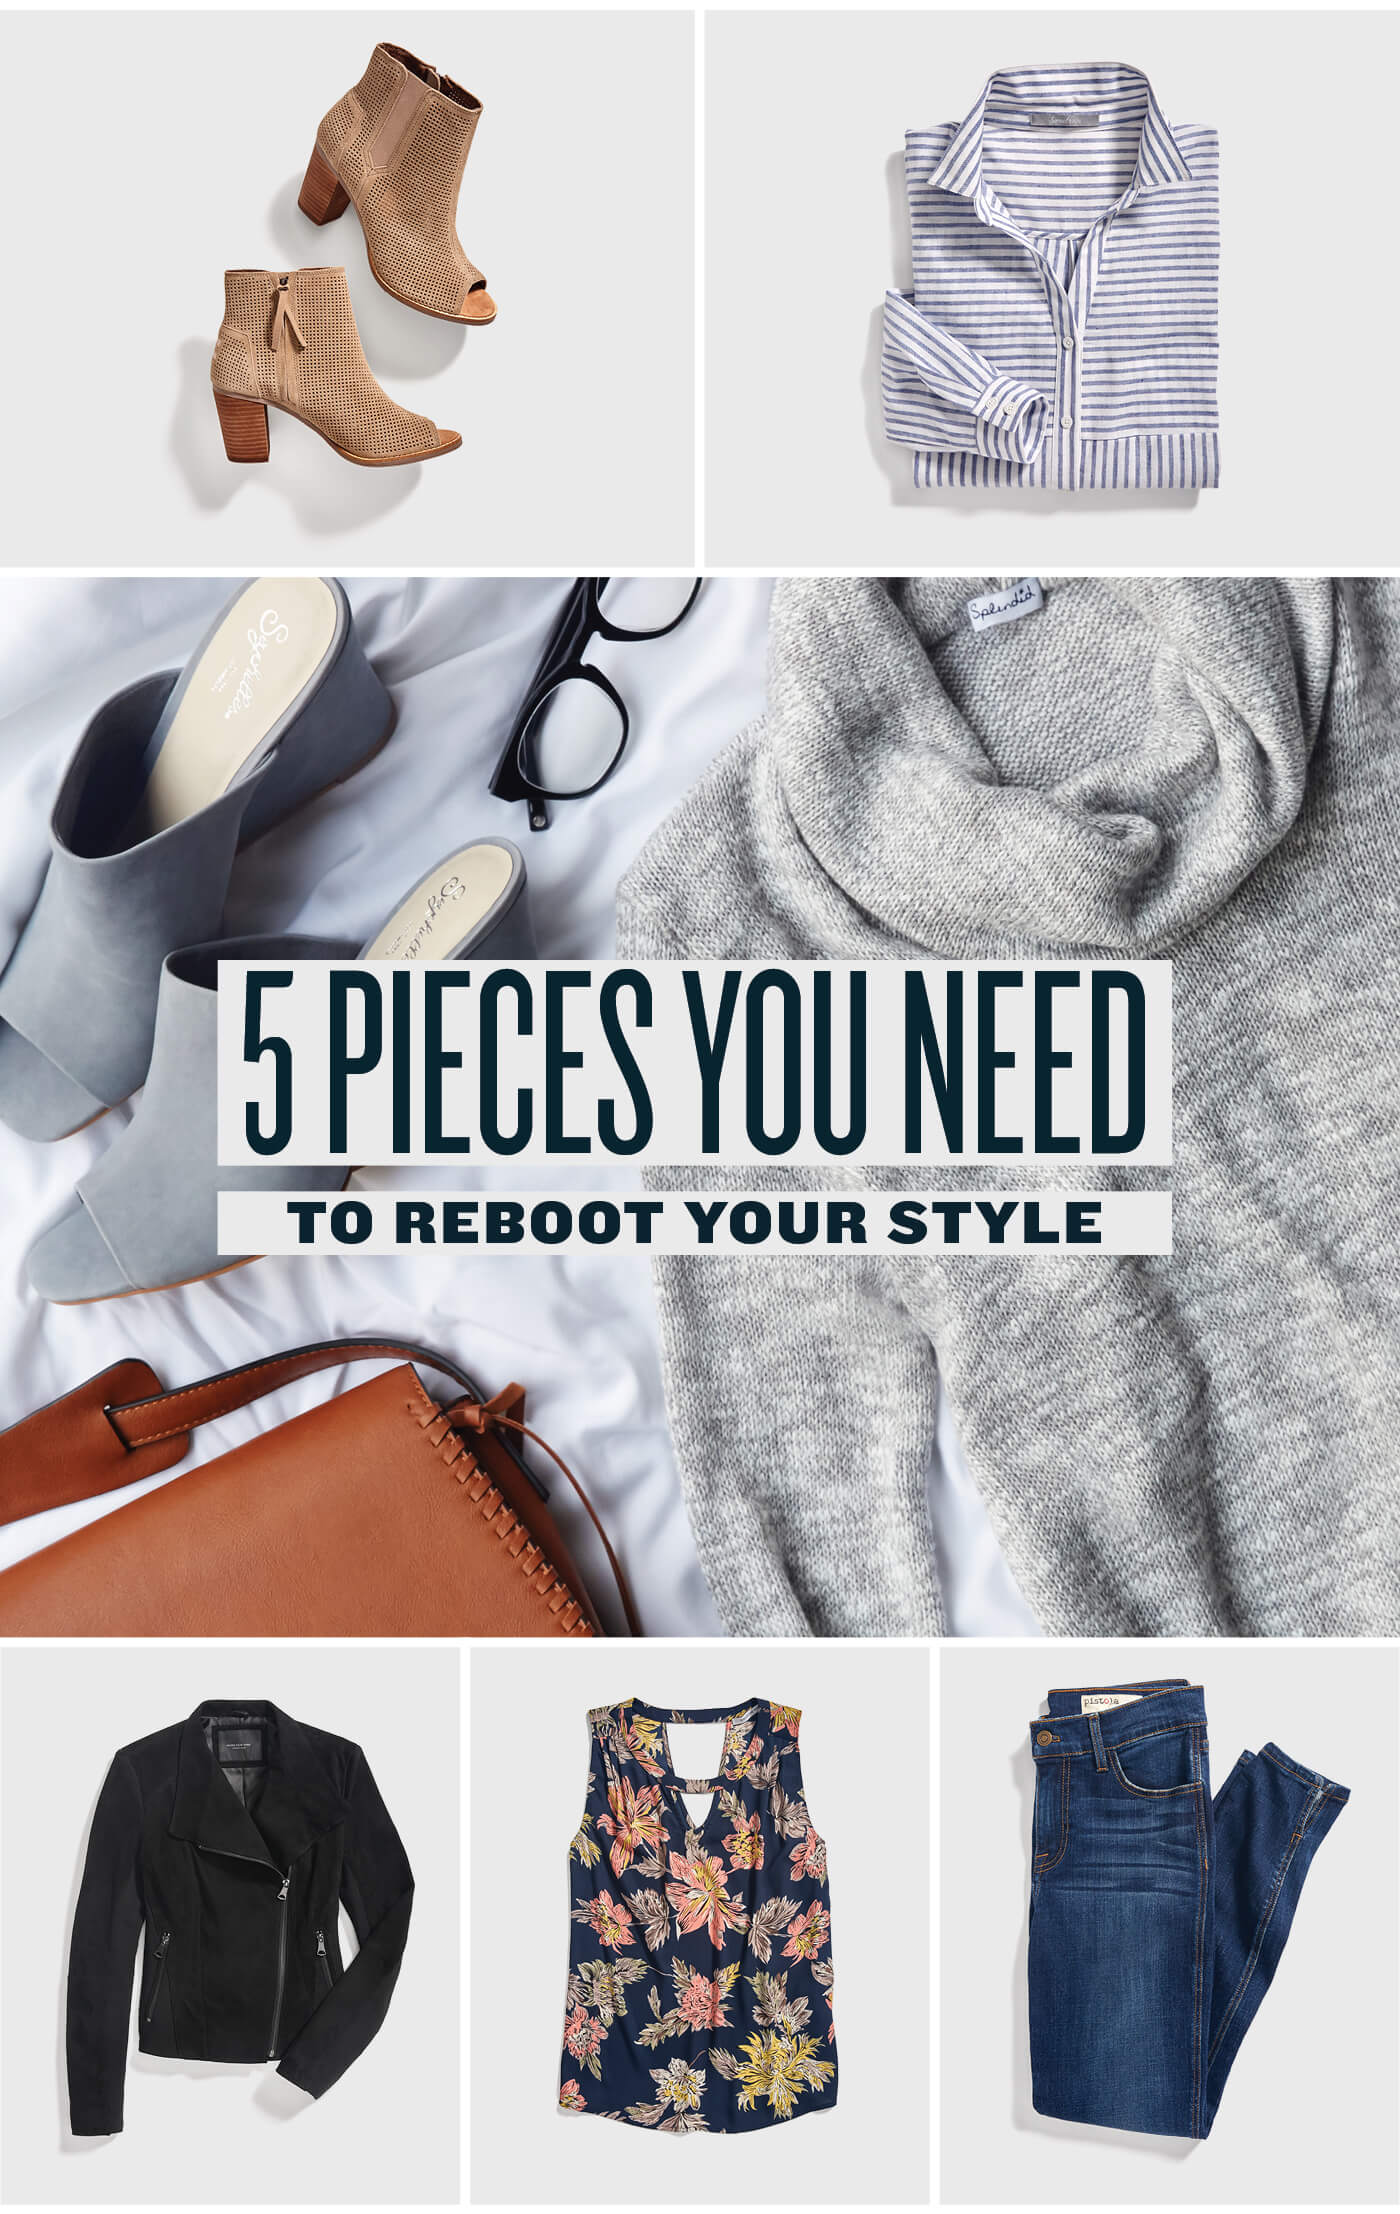 How to Reboot Wardrobe in New Year